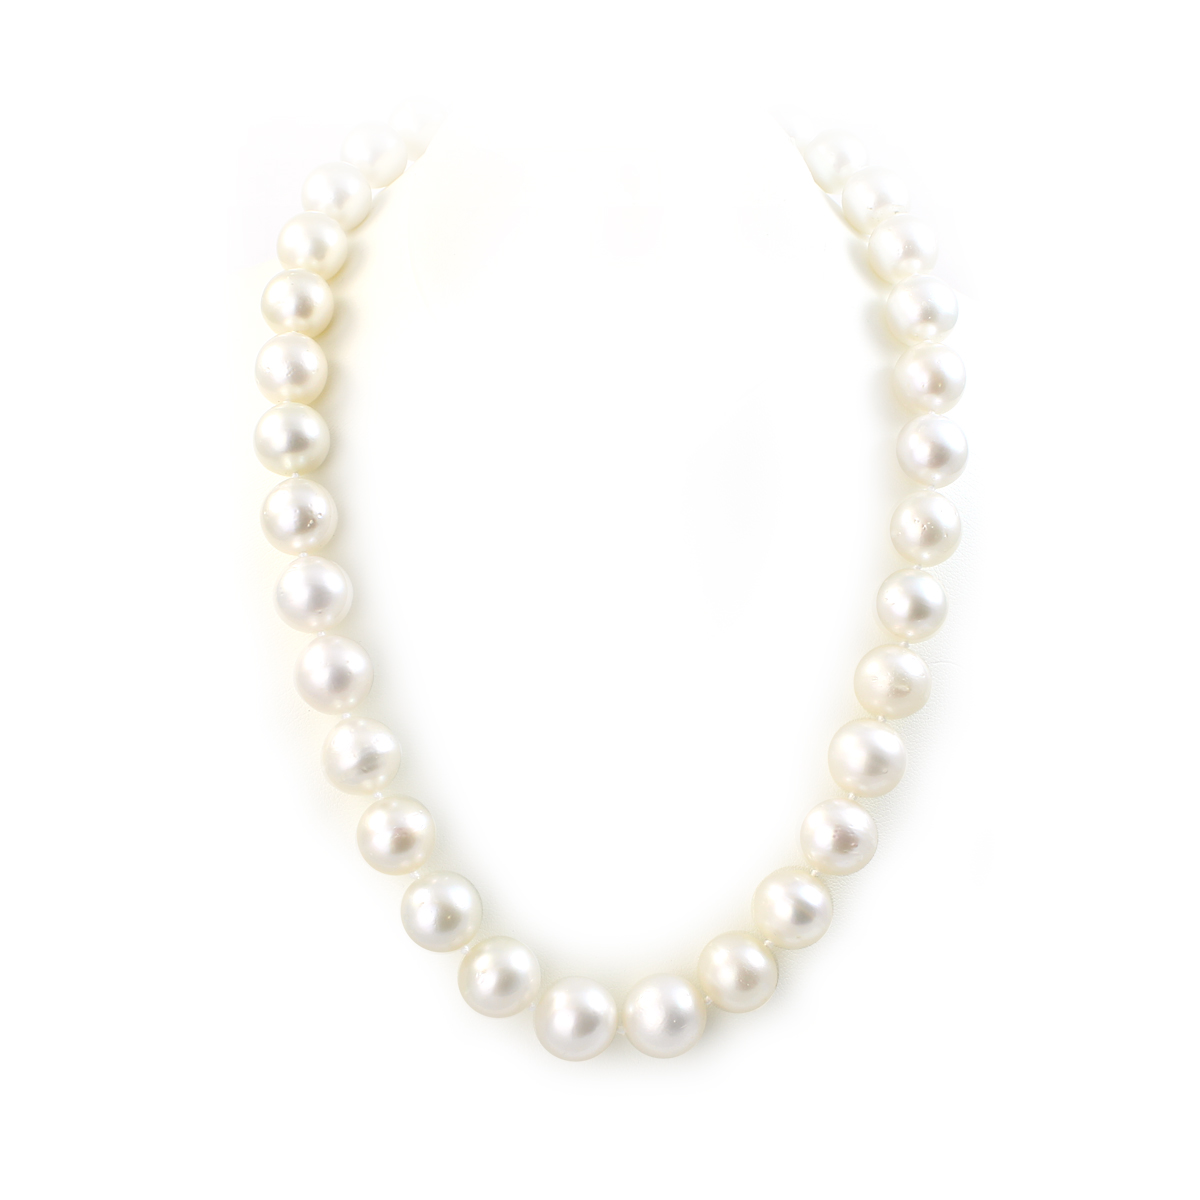 14 Karat White Gold 11-13mm White South Sea Pearl Necklace